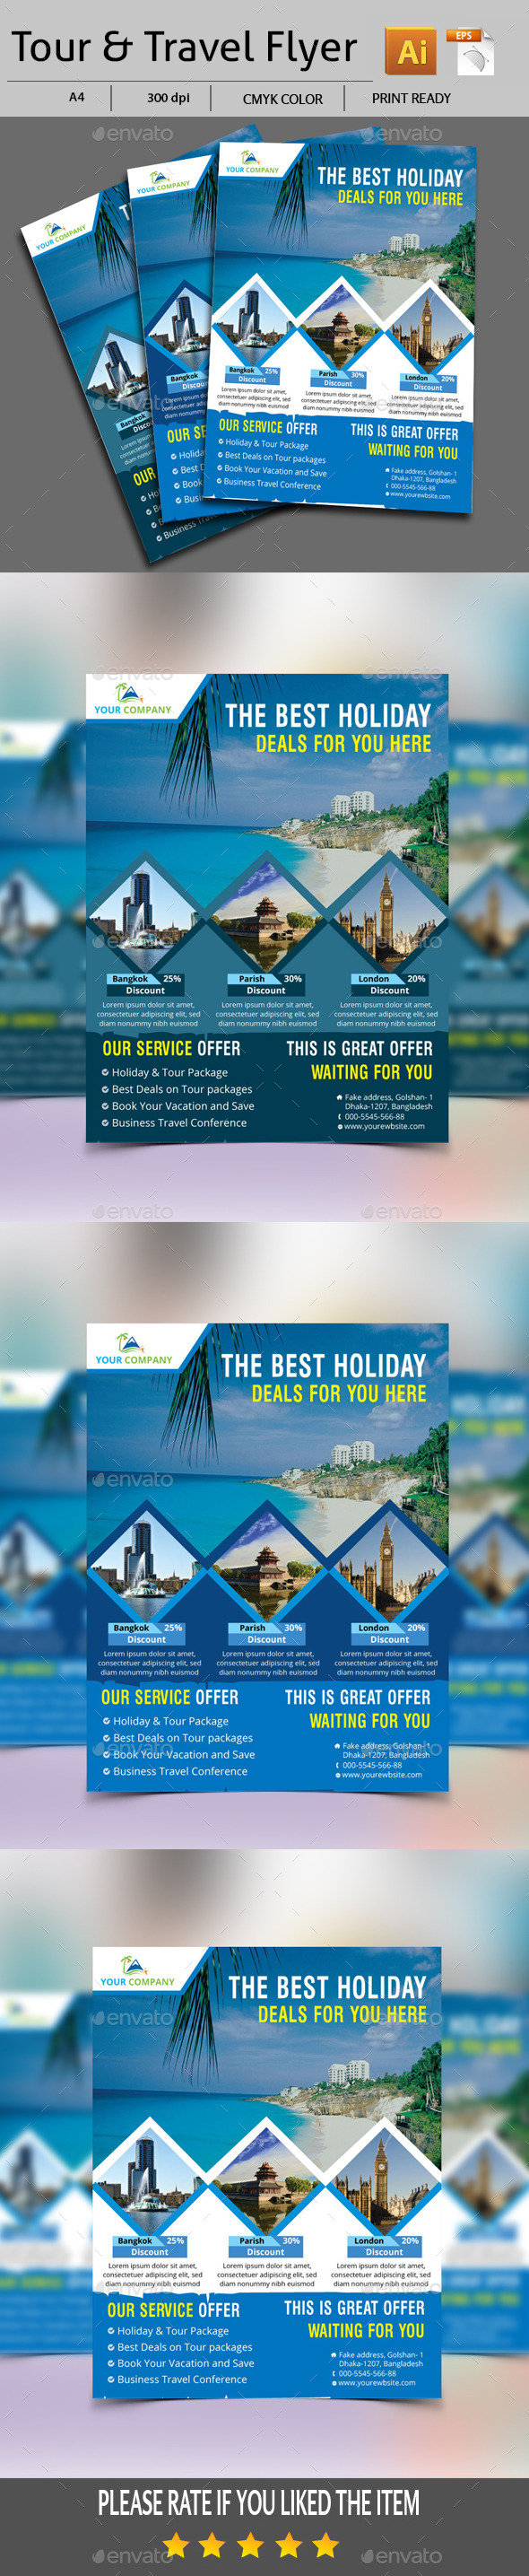 GraphicRiver Tour & Travel Flyer 11907605